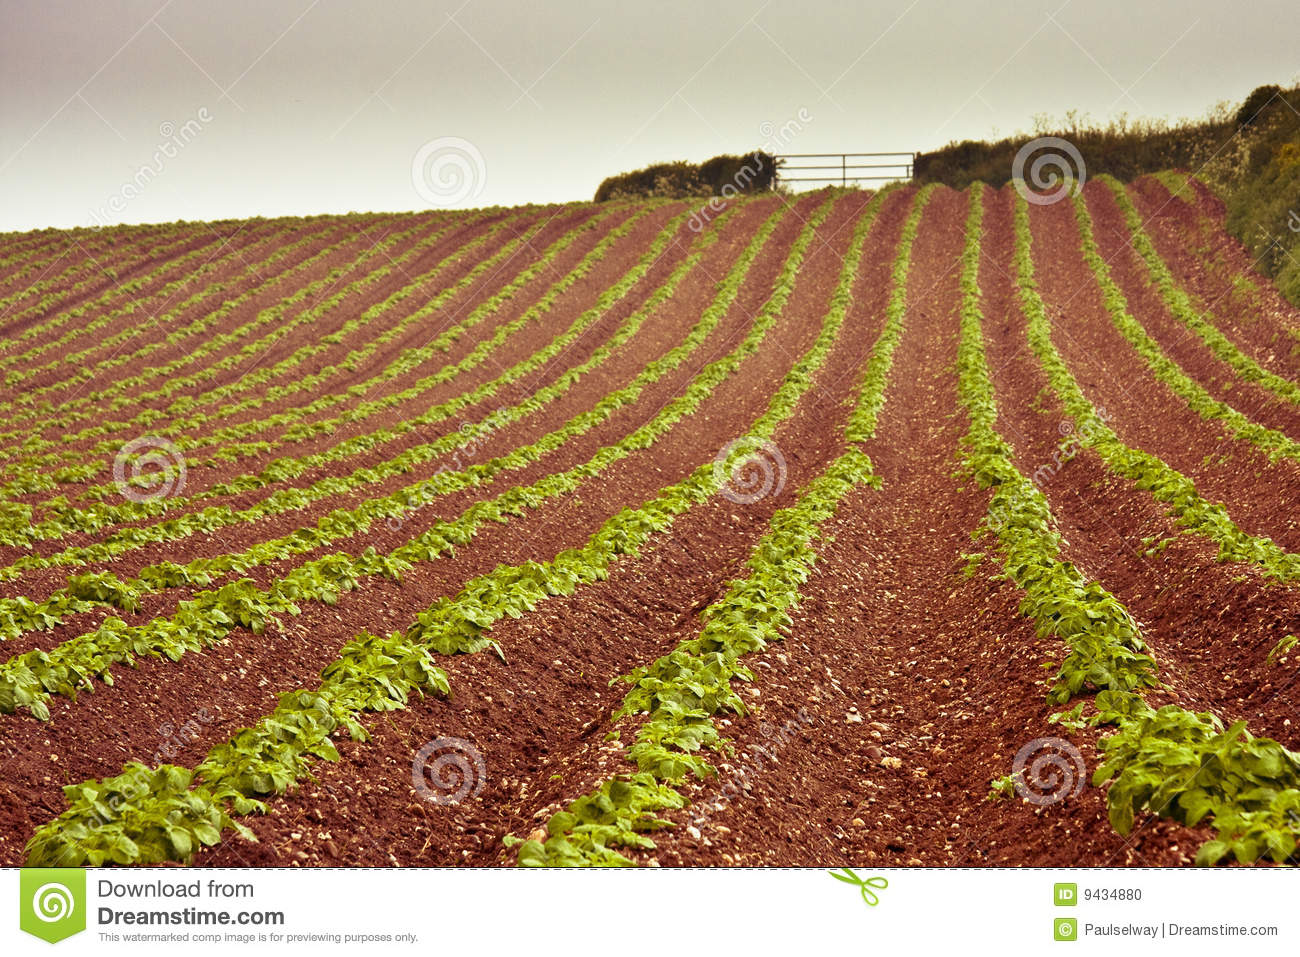 write about red soil crops